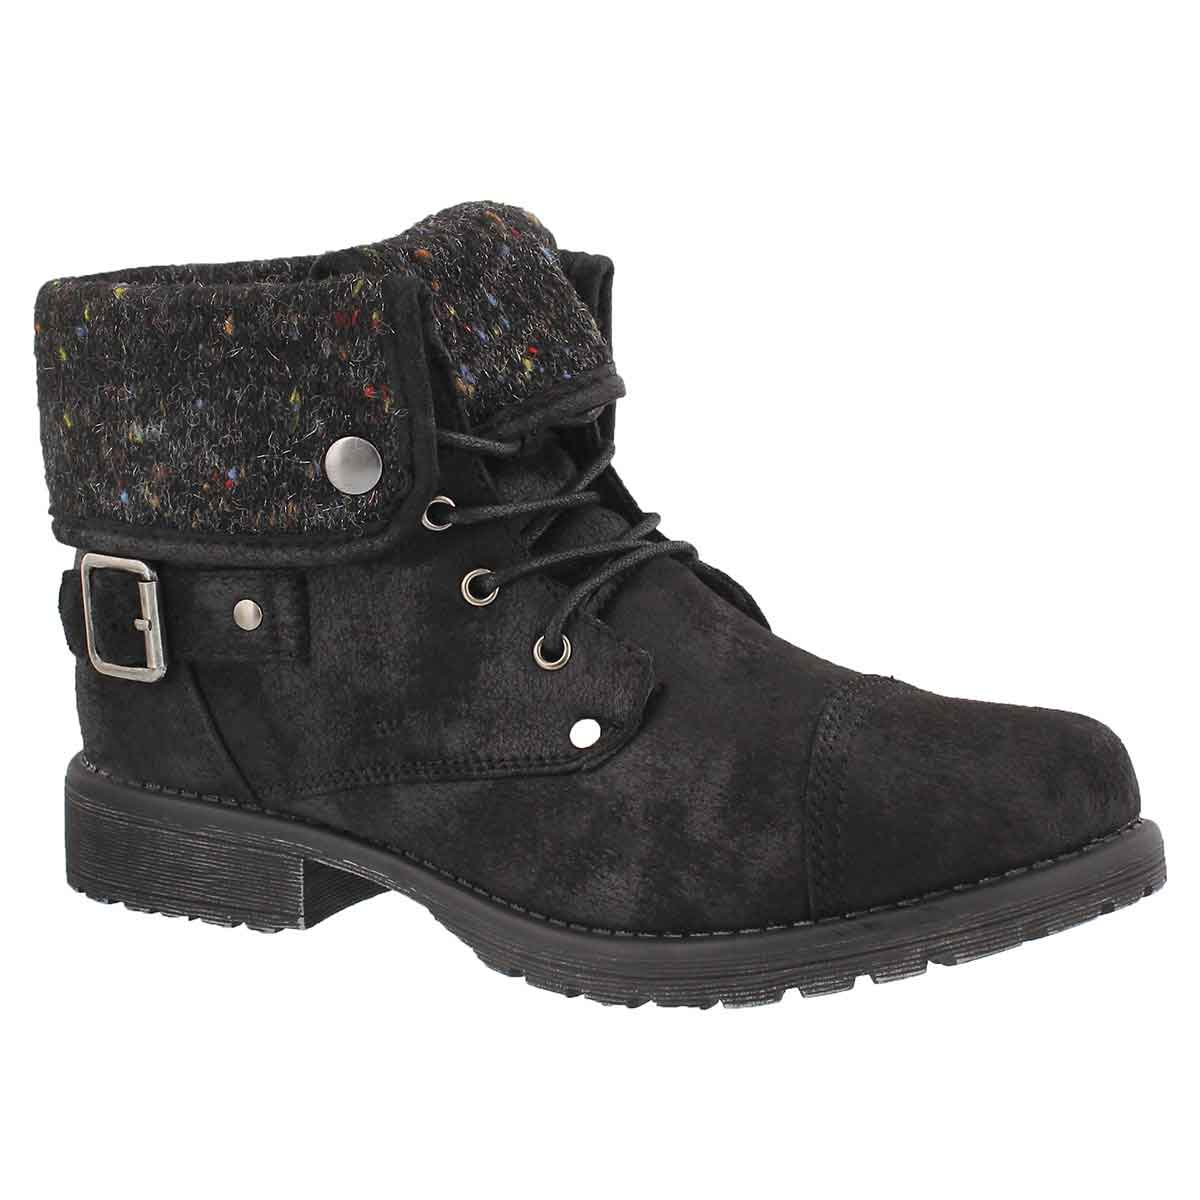 Lds Avery 3 blk lace up casual boot